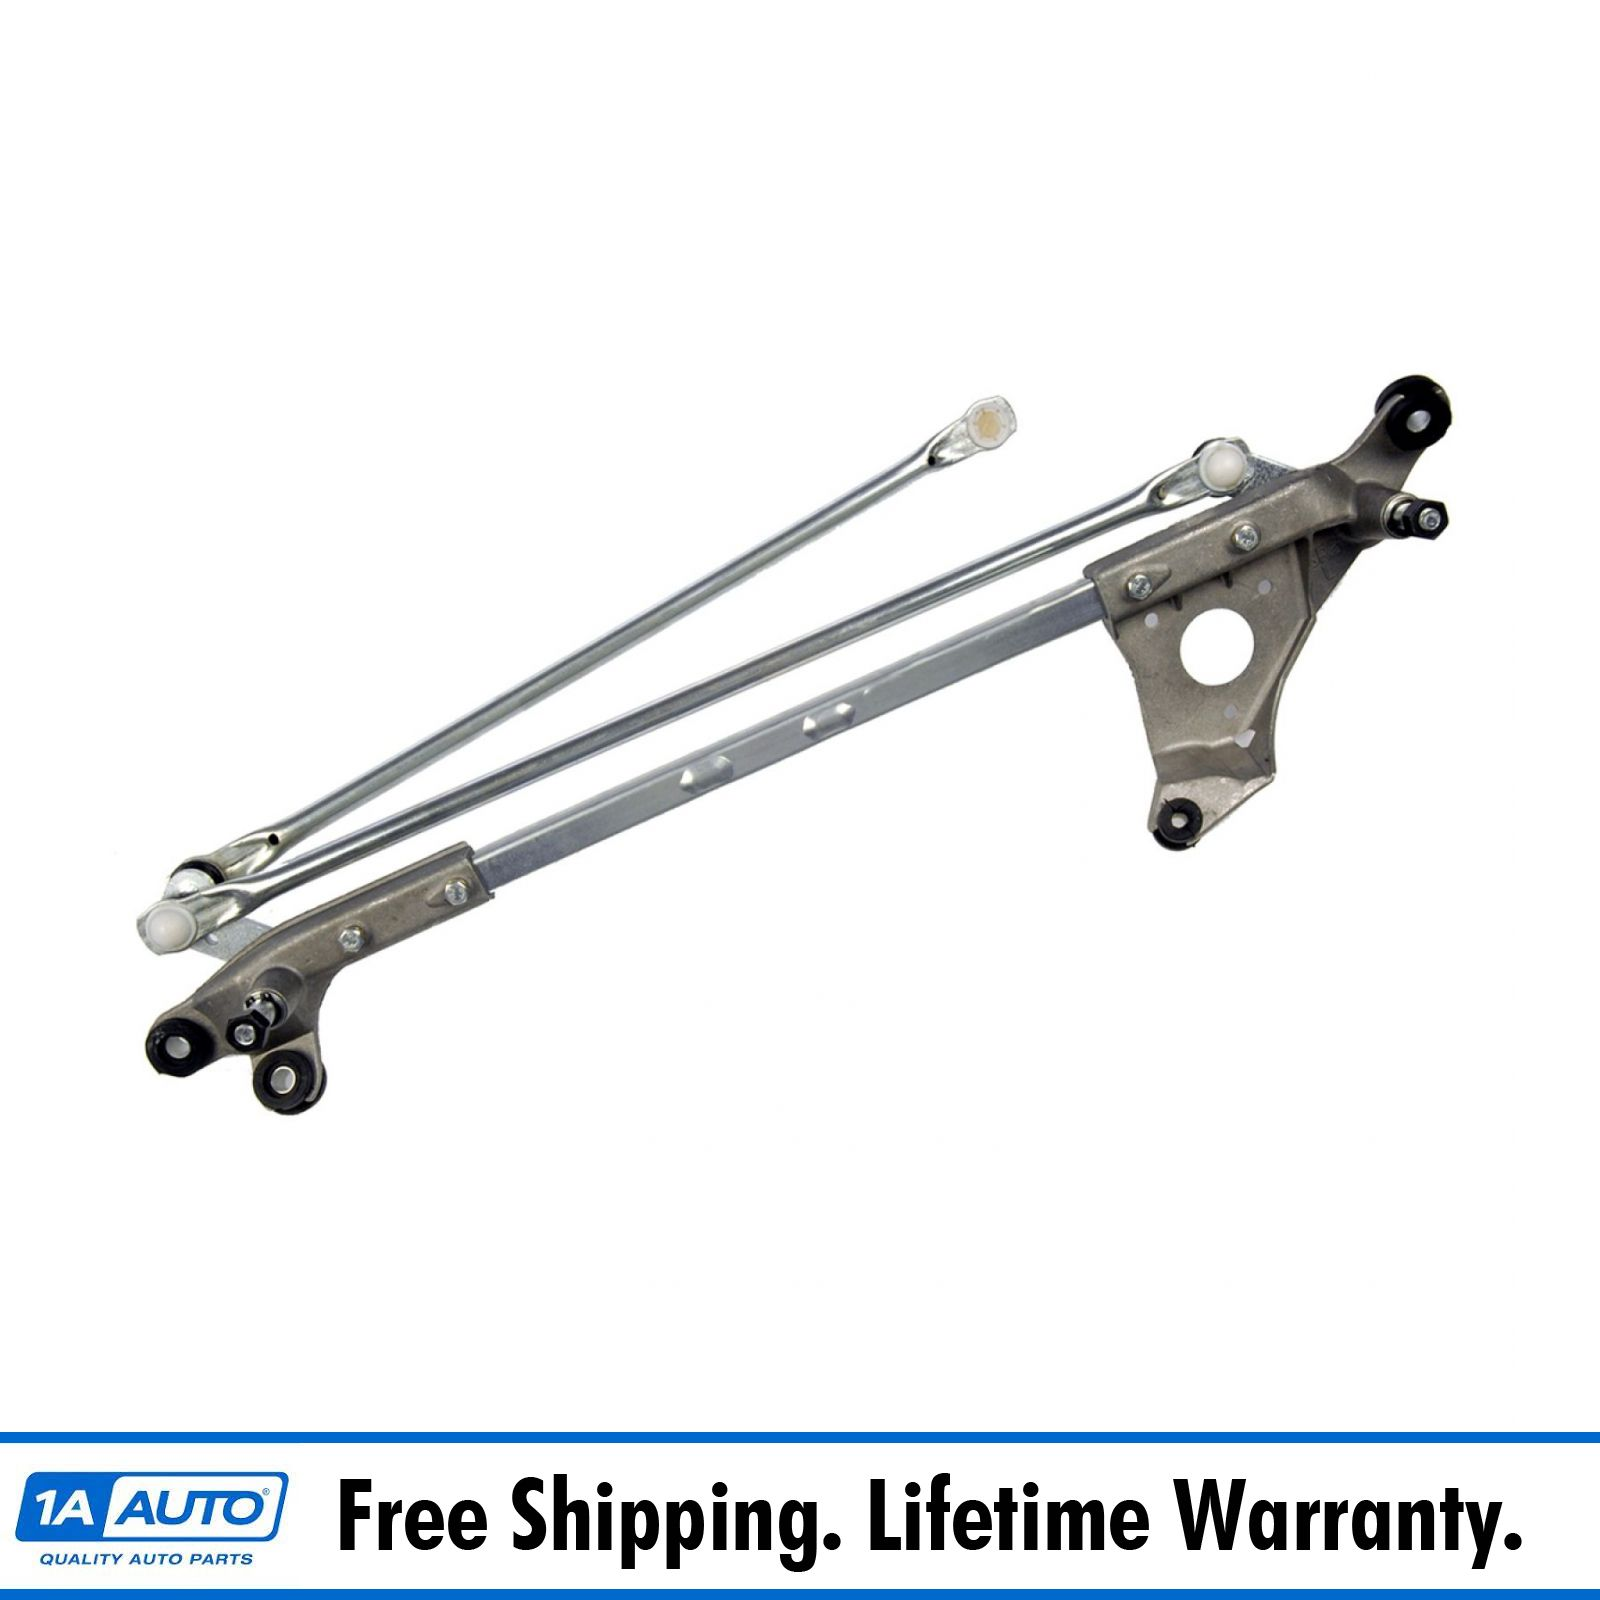 Windshield Wiper Transmission Linkage Frame For Acura